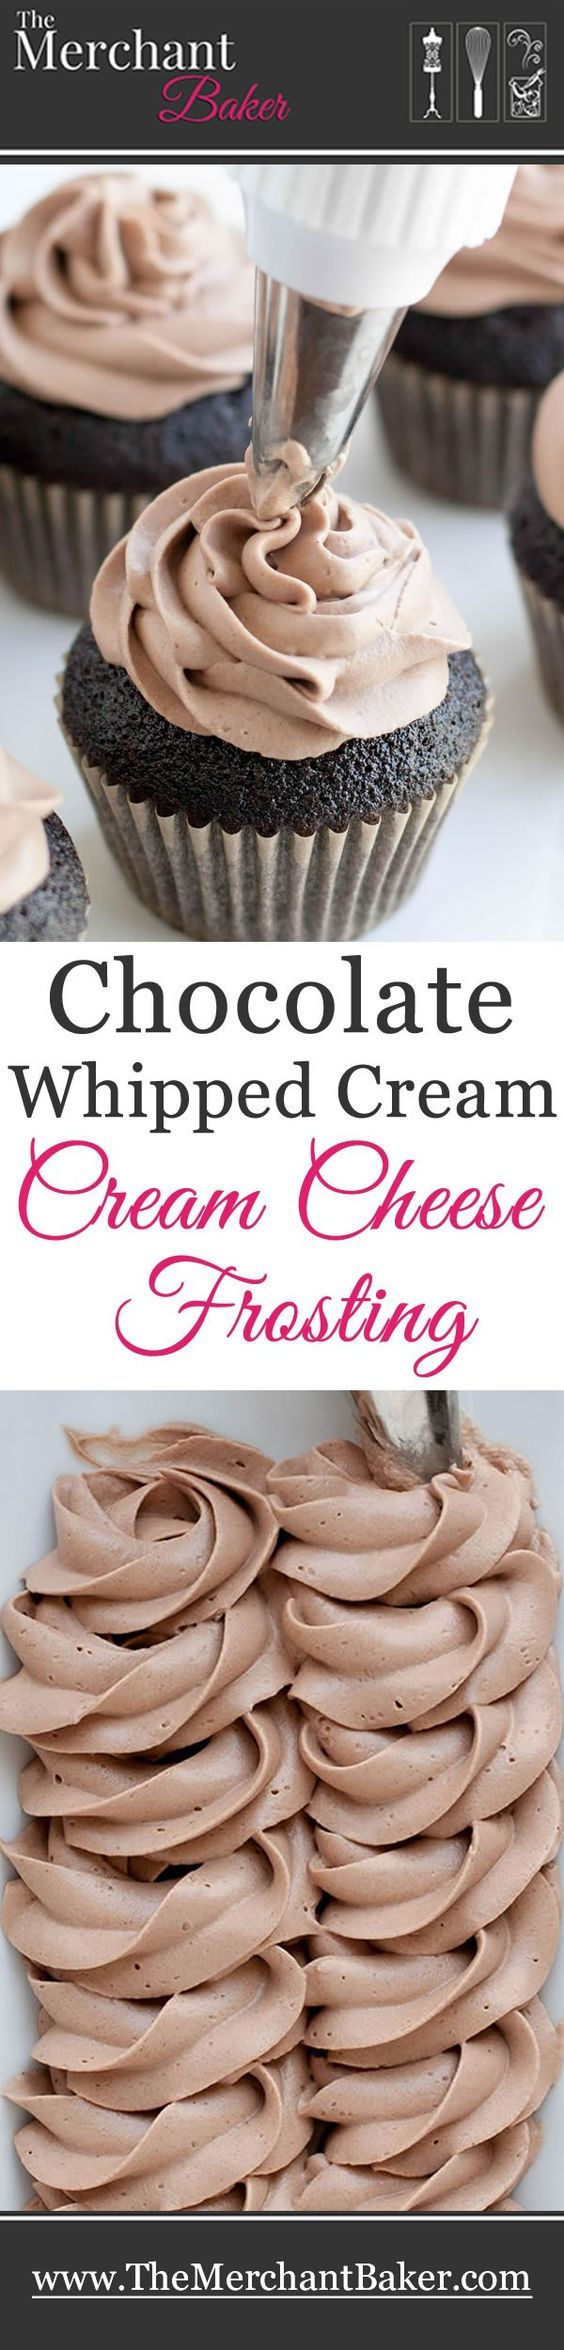 Chocolate Whipped Cream Cream Cheese Frosting. A combination of two favorites, now in chocolate! Wonderfully mellow, creamy and not too sweet! This icing recipe is going to make amazing cupcakes.